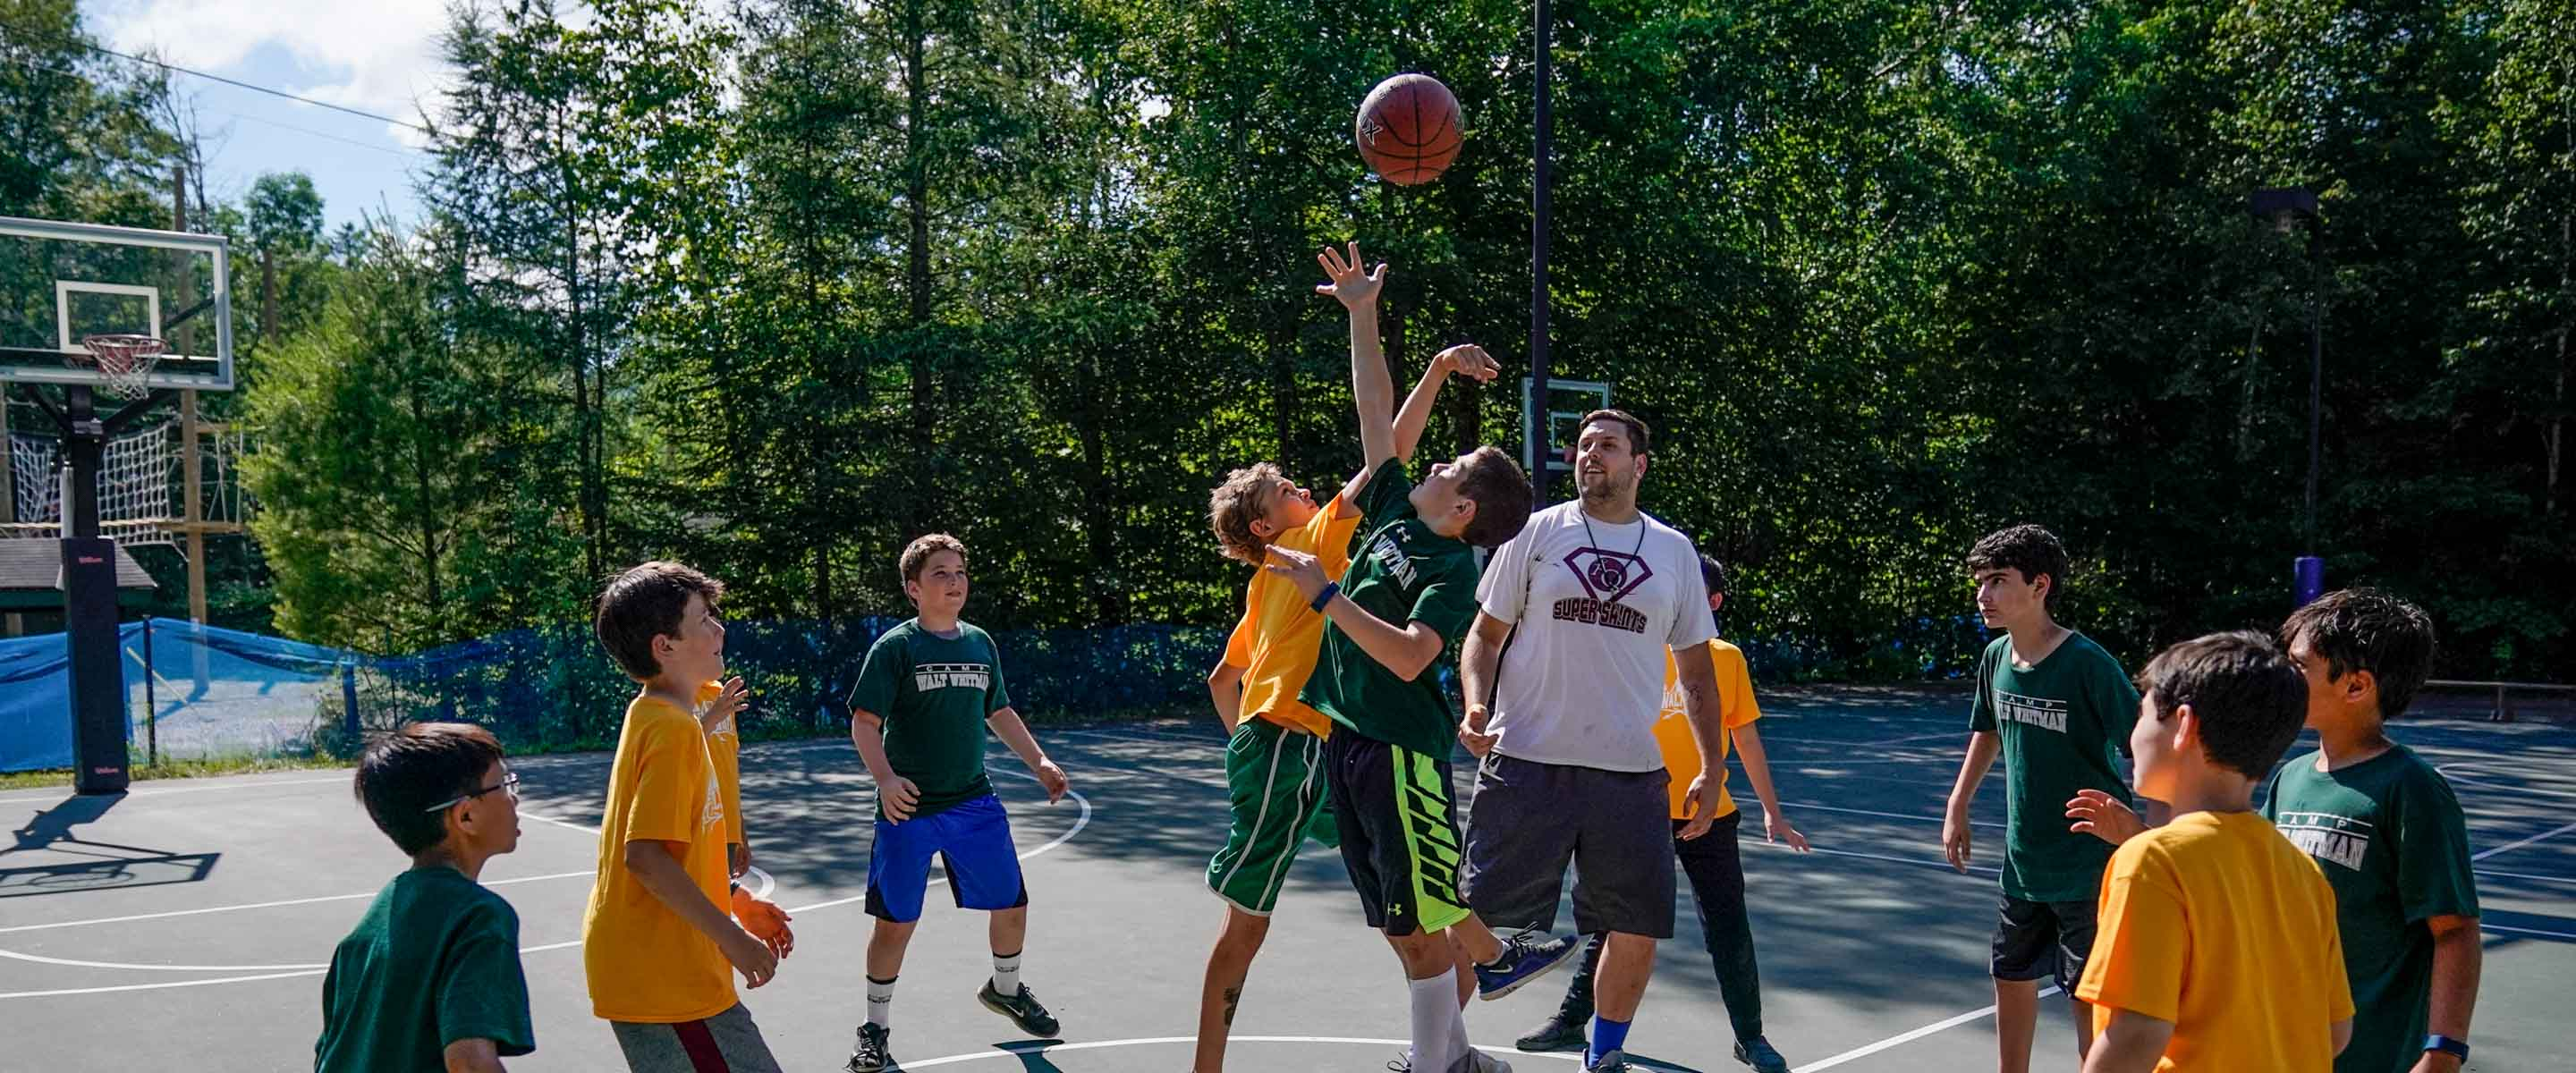 a group of campers playing basketball